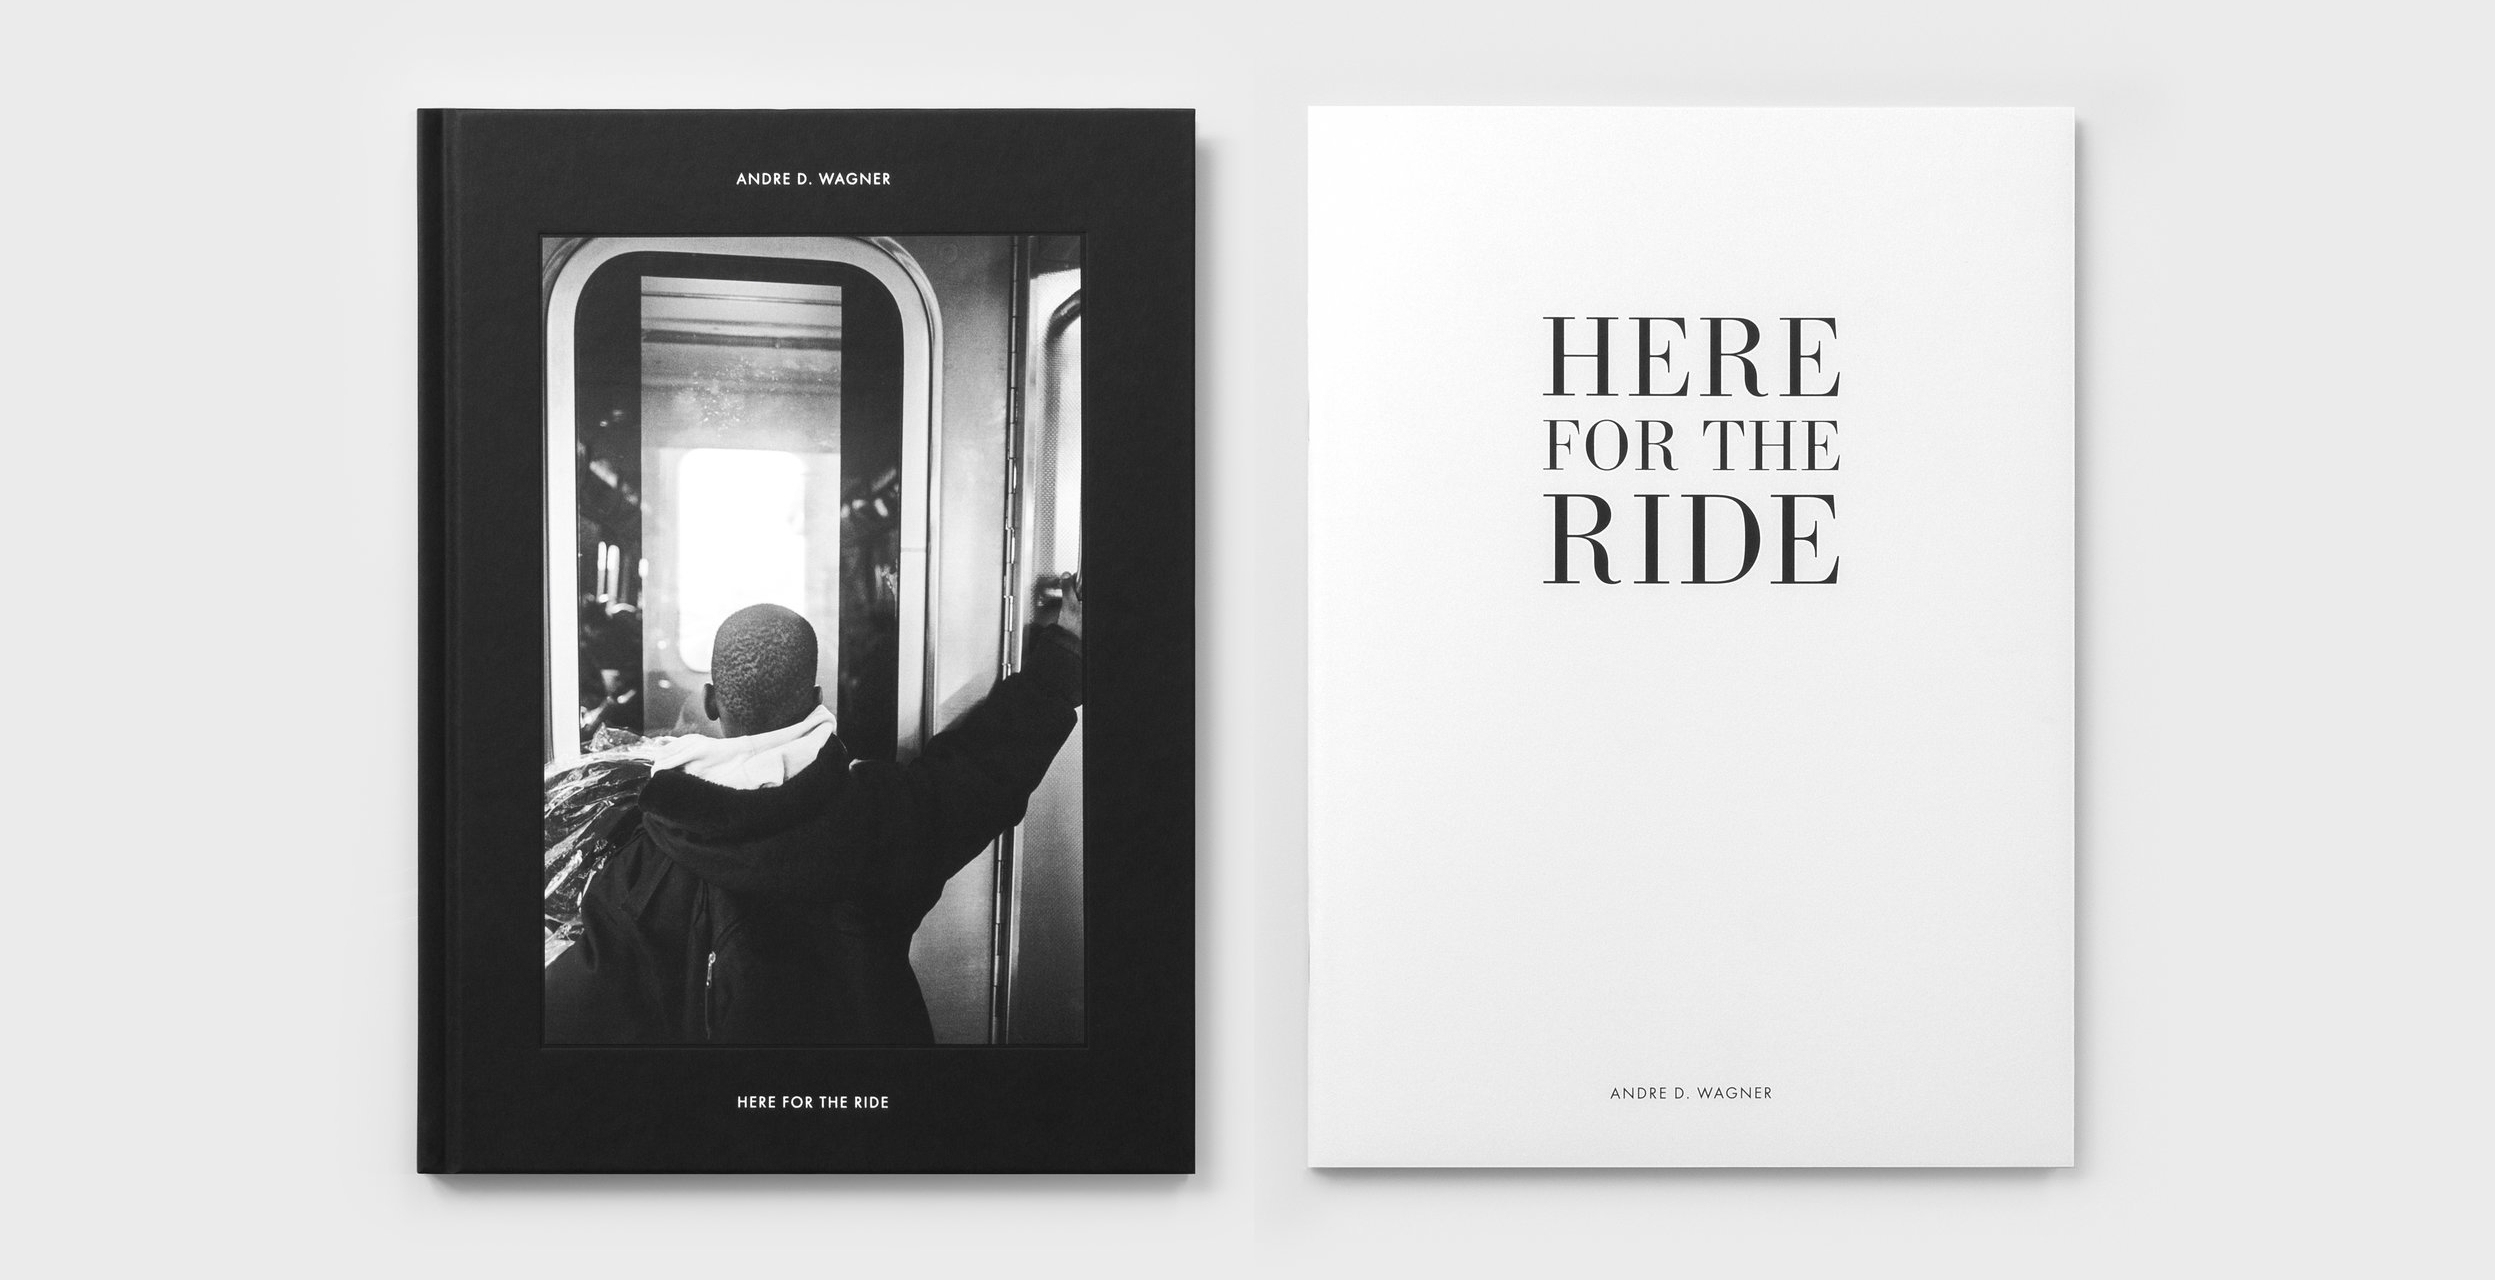 CREATIVE_FUTURE_ANDRE_D_WAGNER_HERE_FOR_THE_RIDE_P1290519.jpg